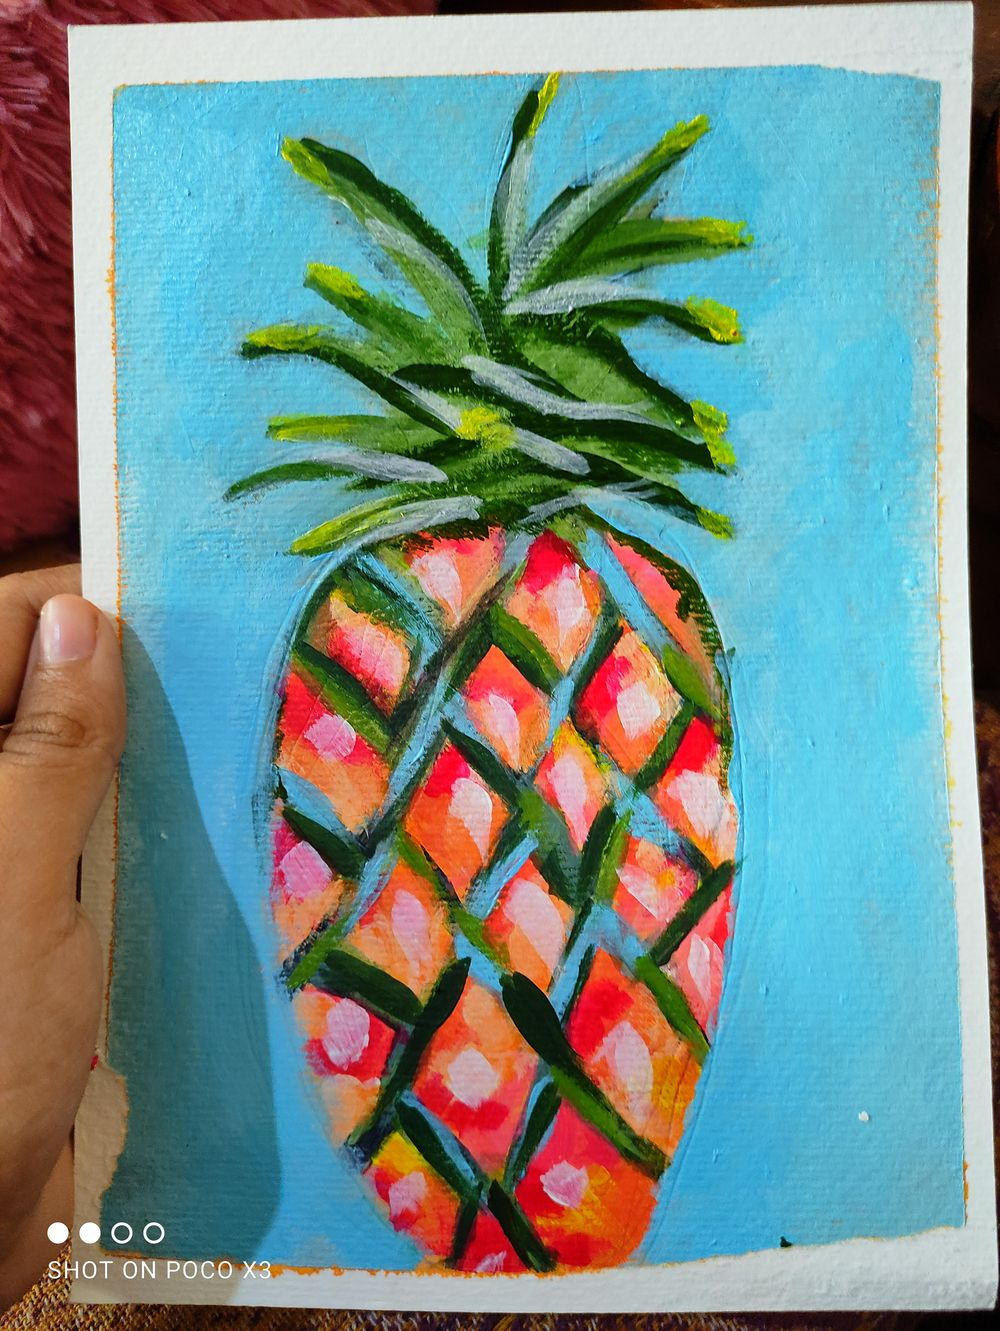 The fruitypineapple by me:D - image 1 - student project